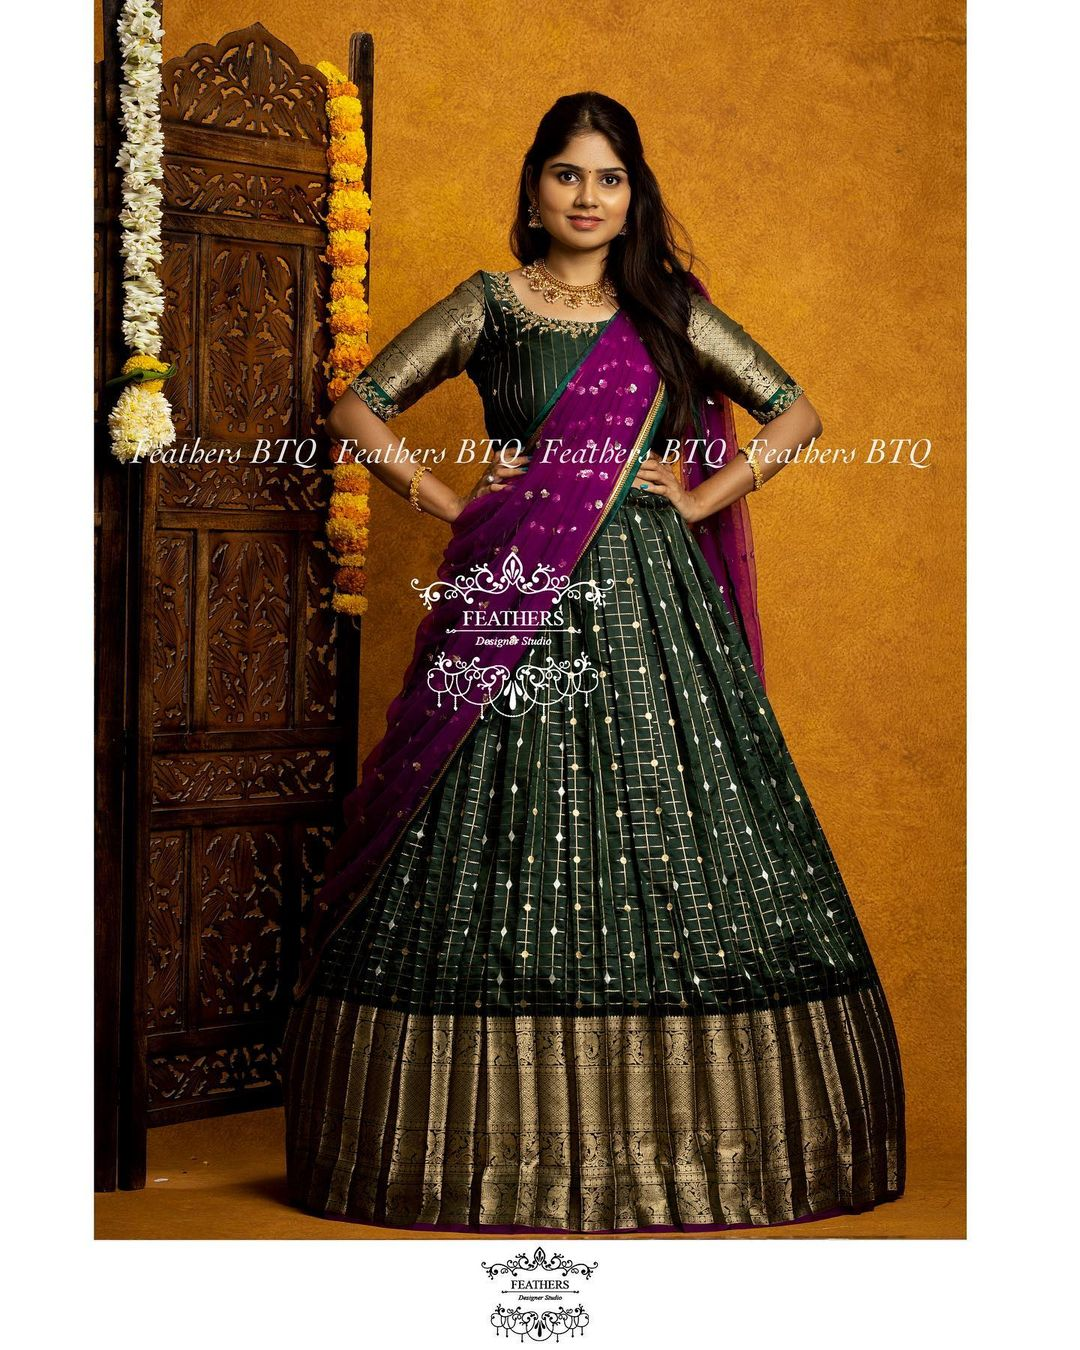 Stunning leaf green color pattu lehenga and blouse with purple color net dupatta. Blouse with gold jari sleeves. 2021-08-06